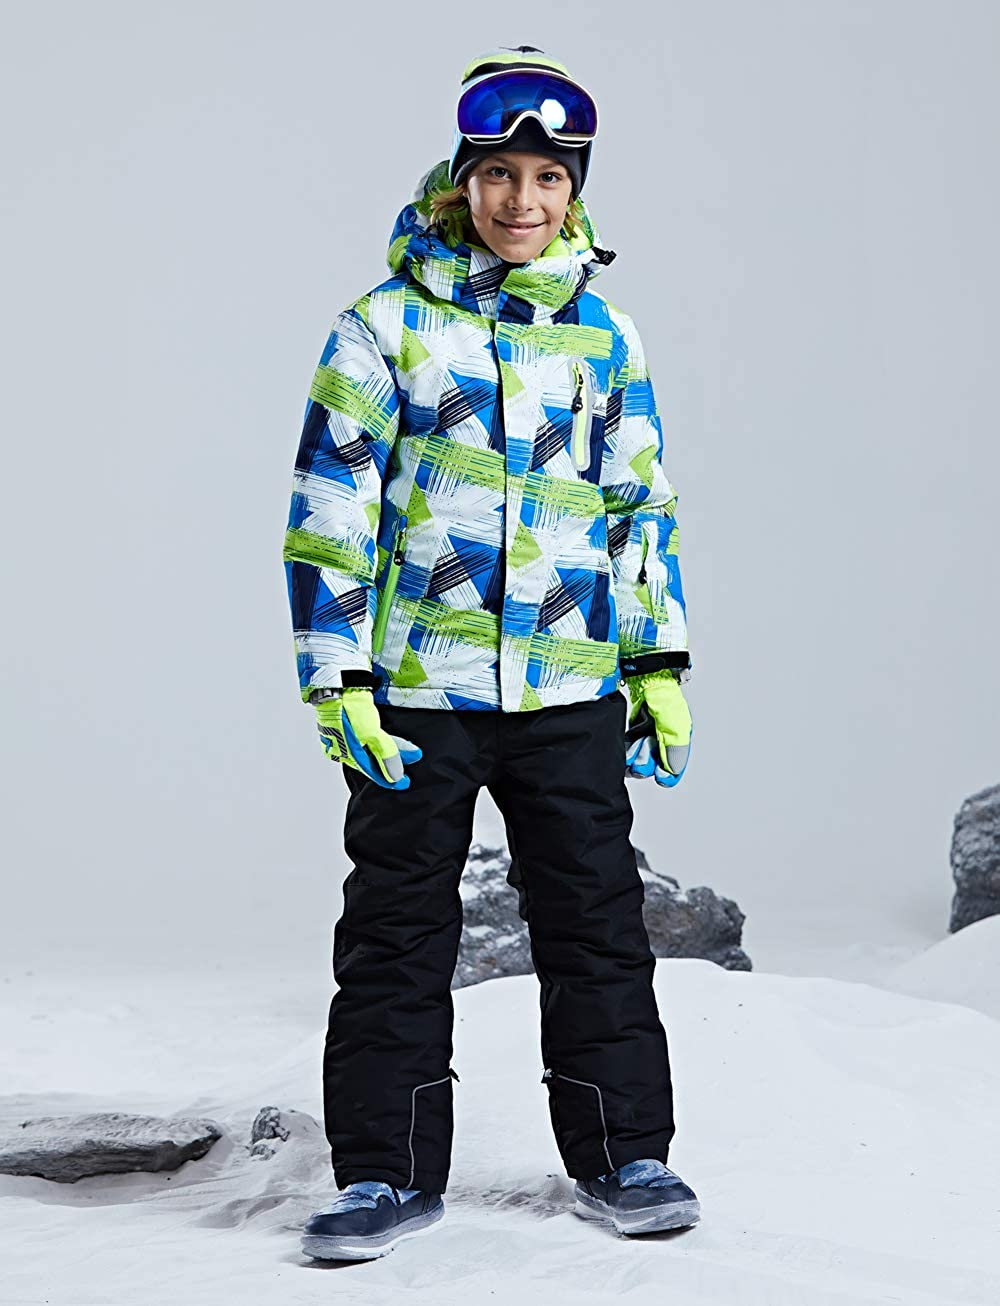 YEEFINE SNOWING Boys 2-Piece Ski Suit Waterproof Snowsuit Hooded Jackets Pants